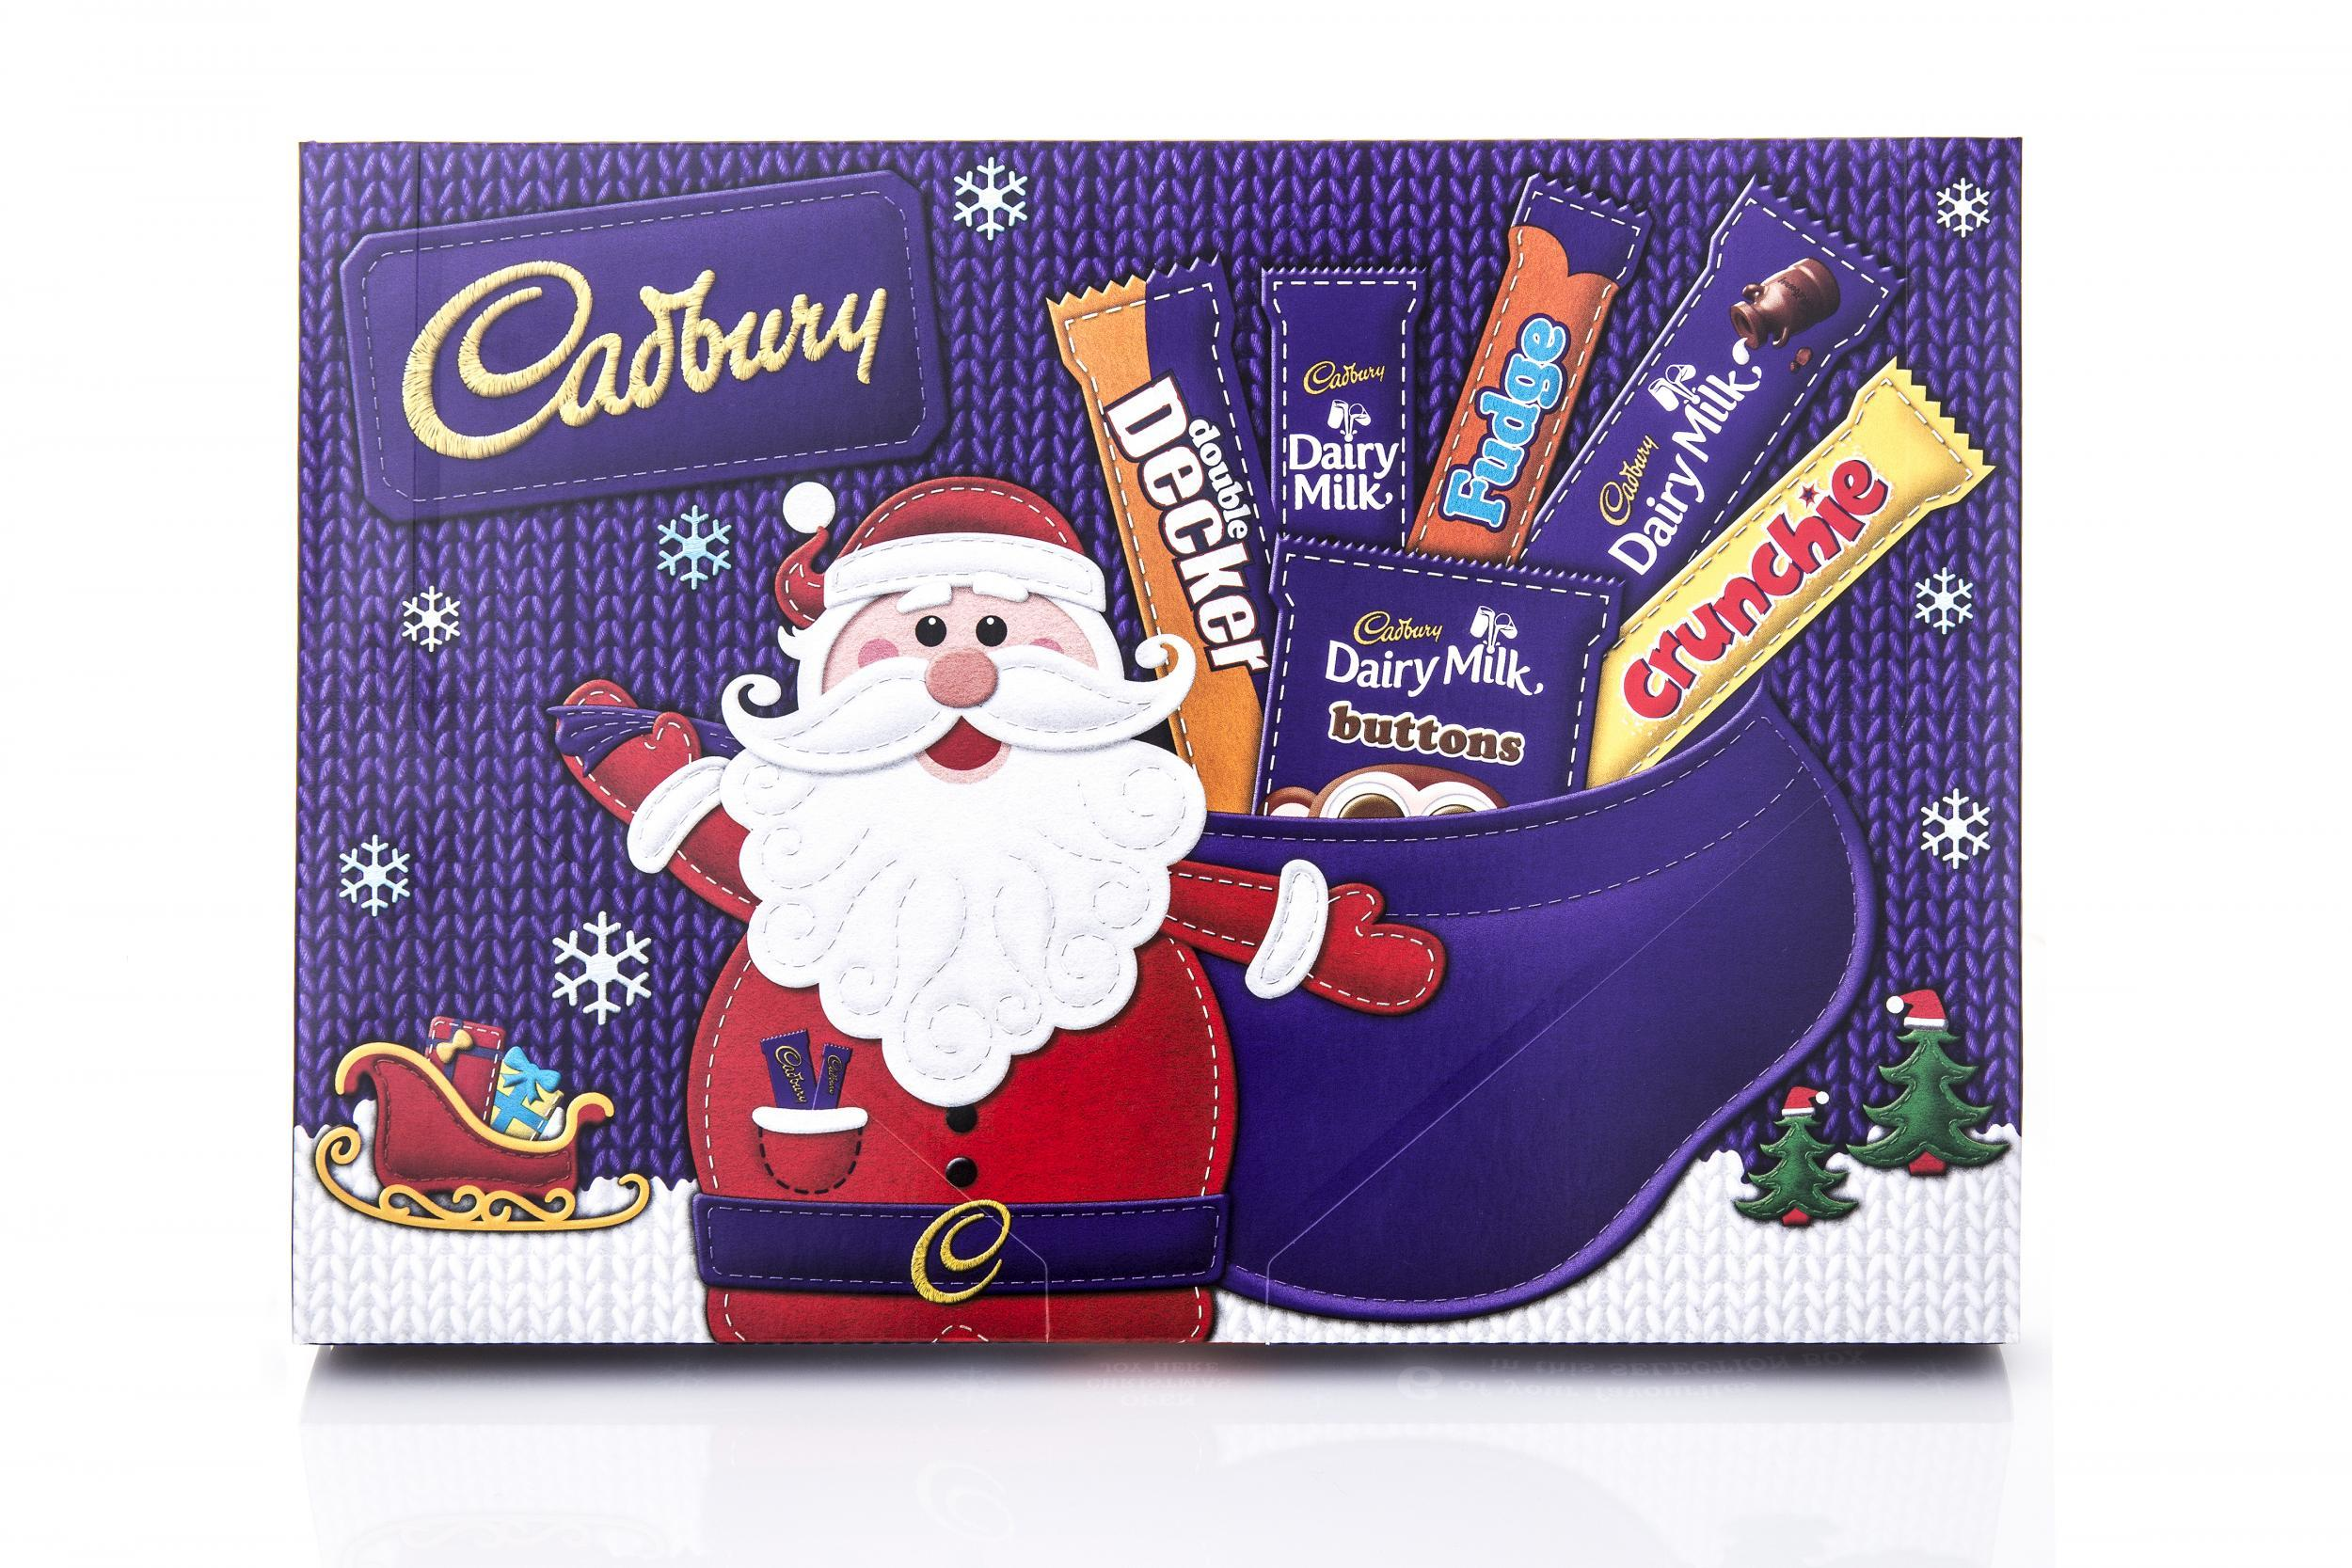 Cadbury has dropped Fudge bars from selection boxes and replaced them with Oreo Dairy Milk